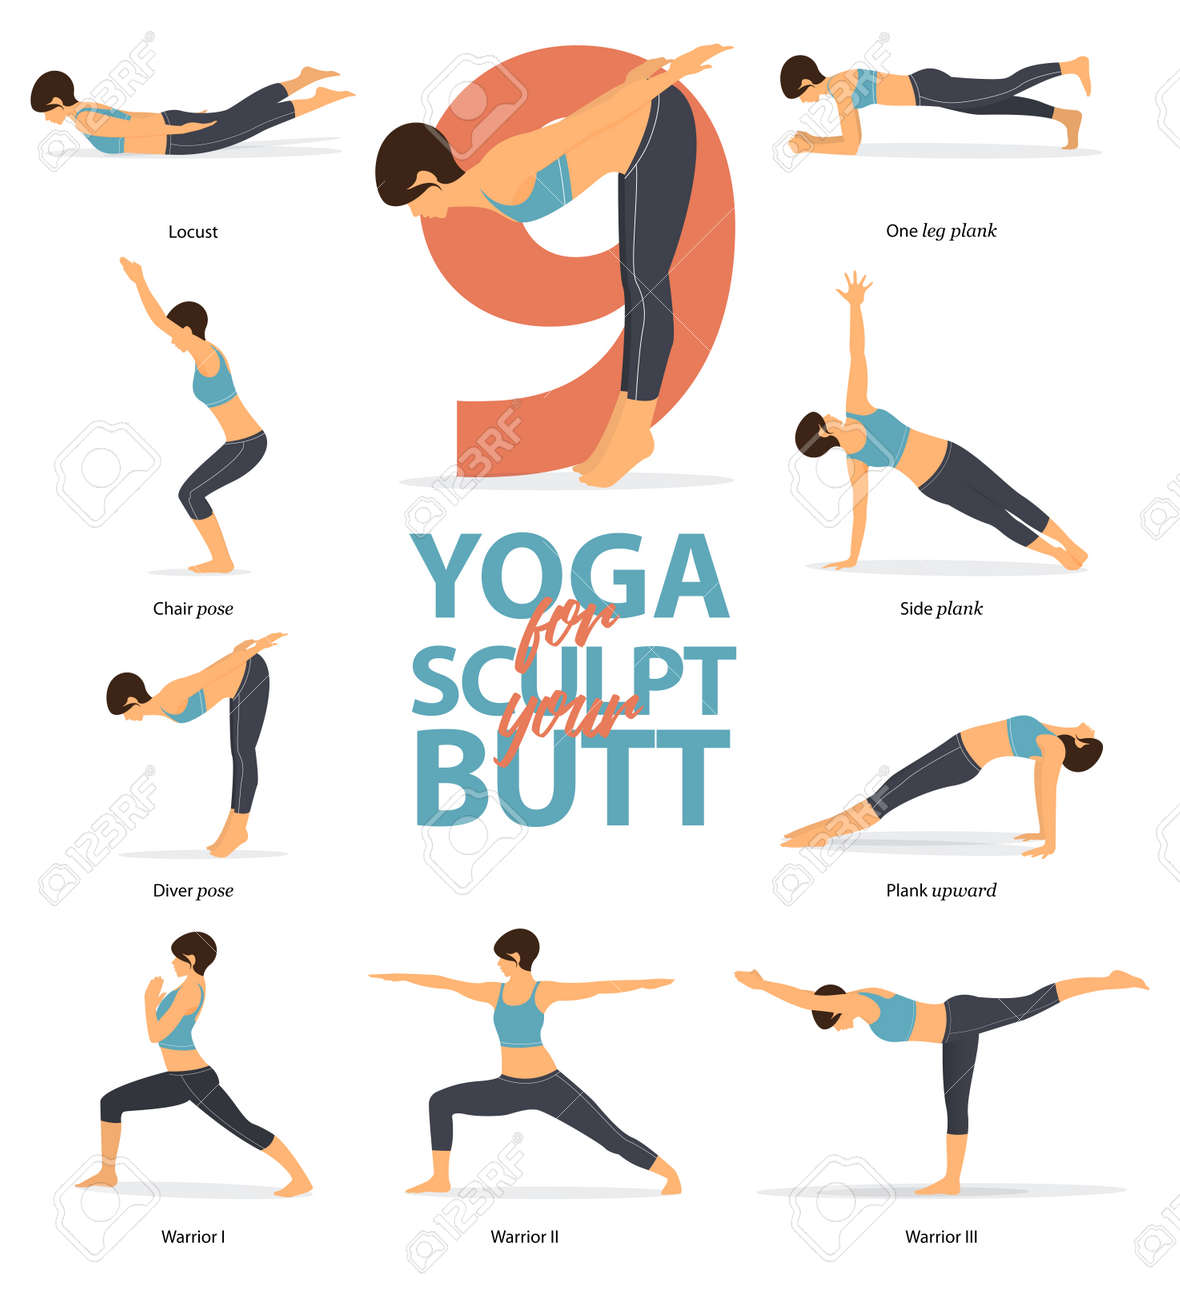 Set Of Yoga Postures Female Figures Infographic 6 Yoga Poses Royalty Free Cliparts Vectors And Stock Illustration Image 123158422